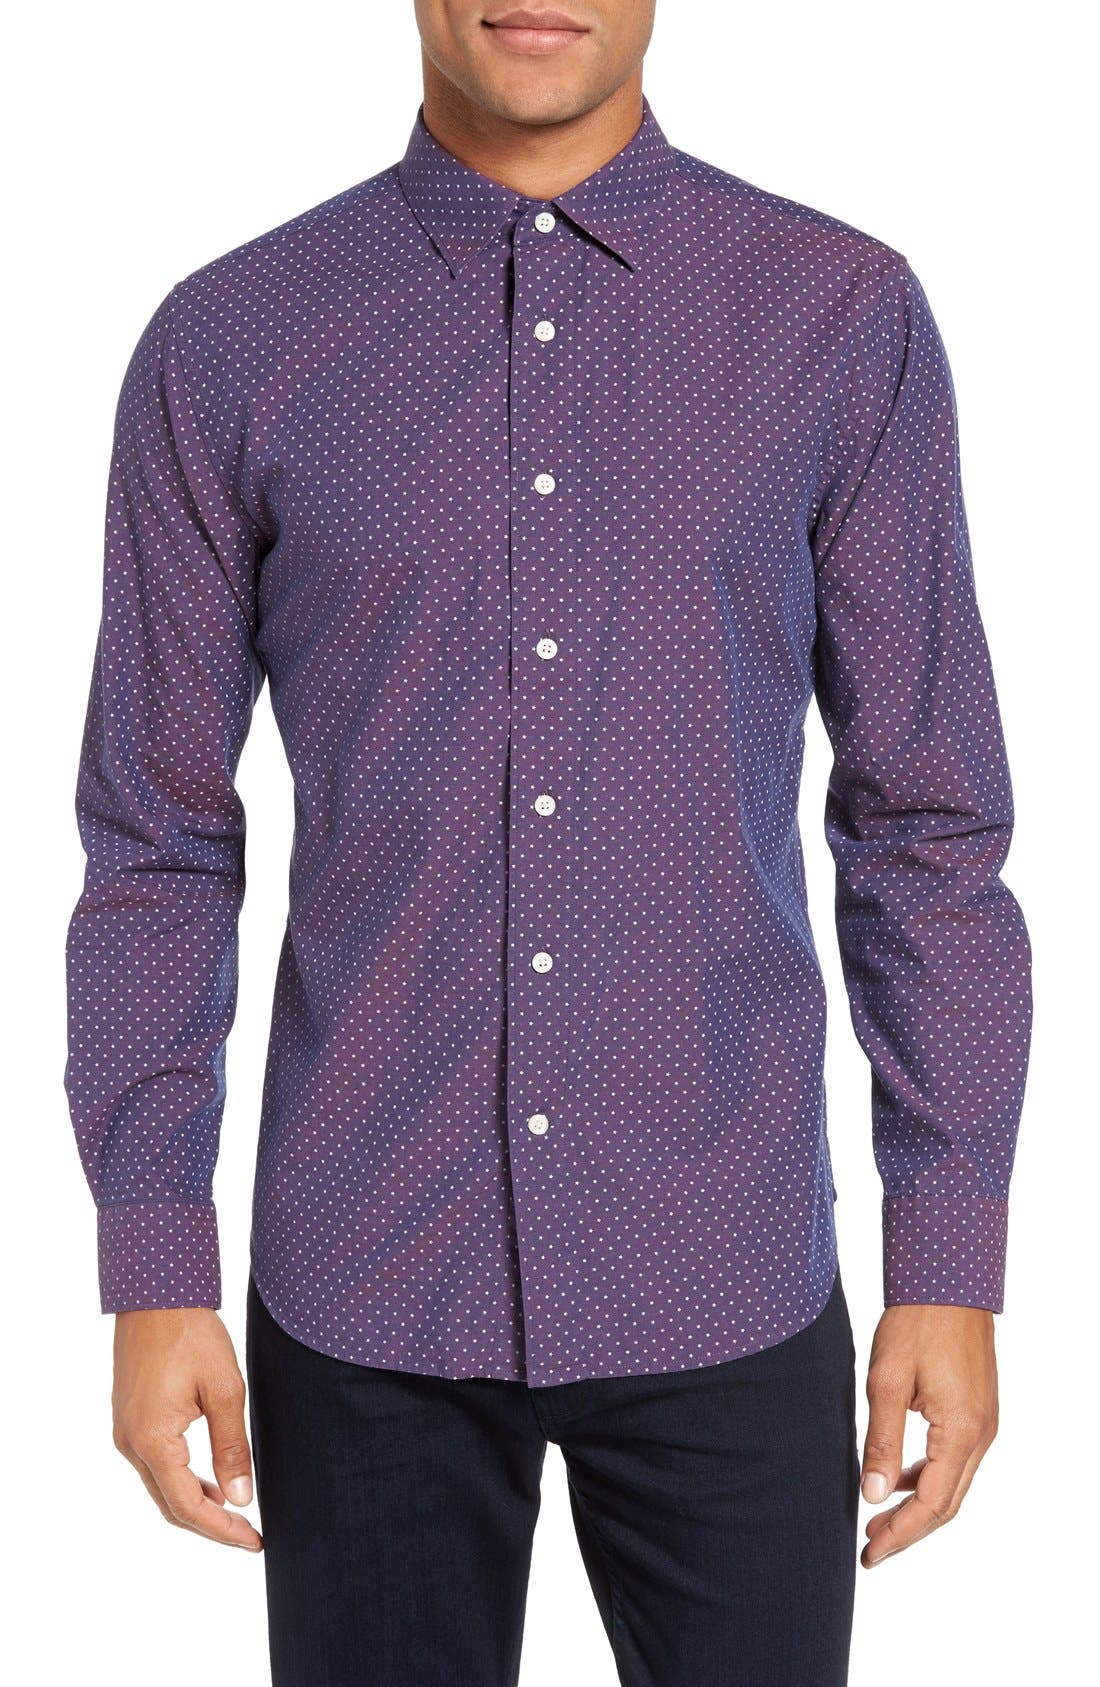 Slate & Stone Slim Fit Star Print Sport Shirt